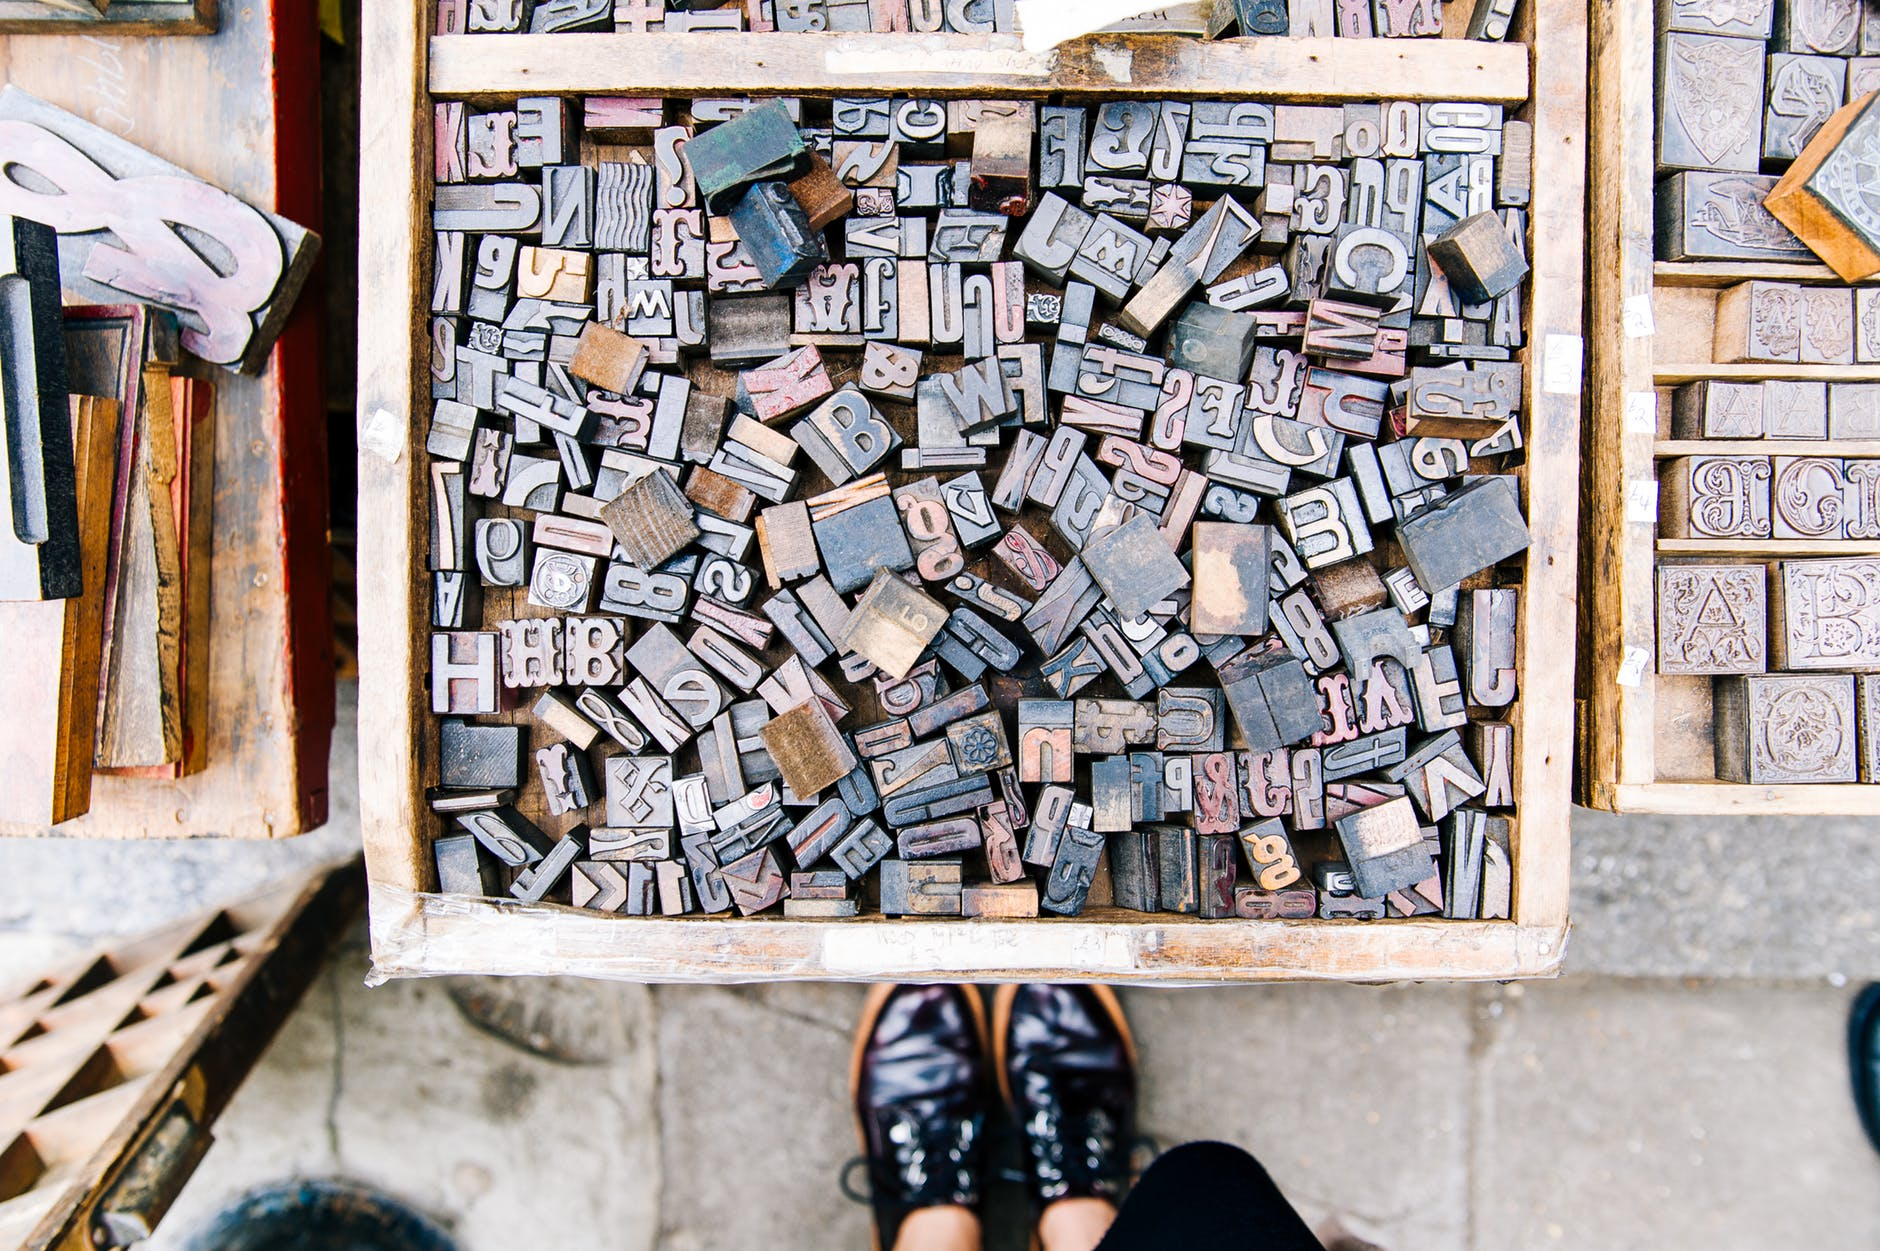 assorted wooden alphabets inside the crate